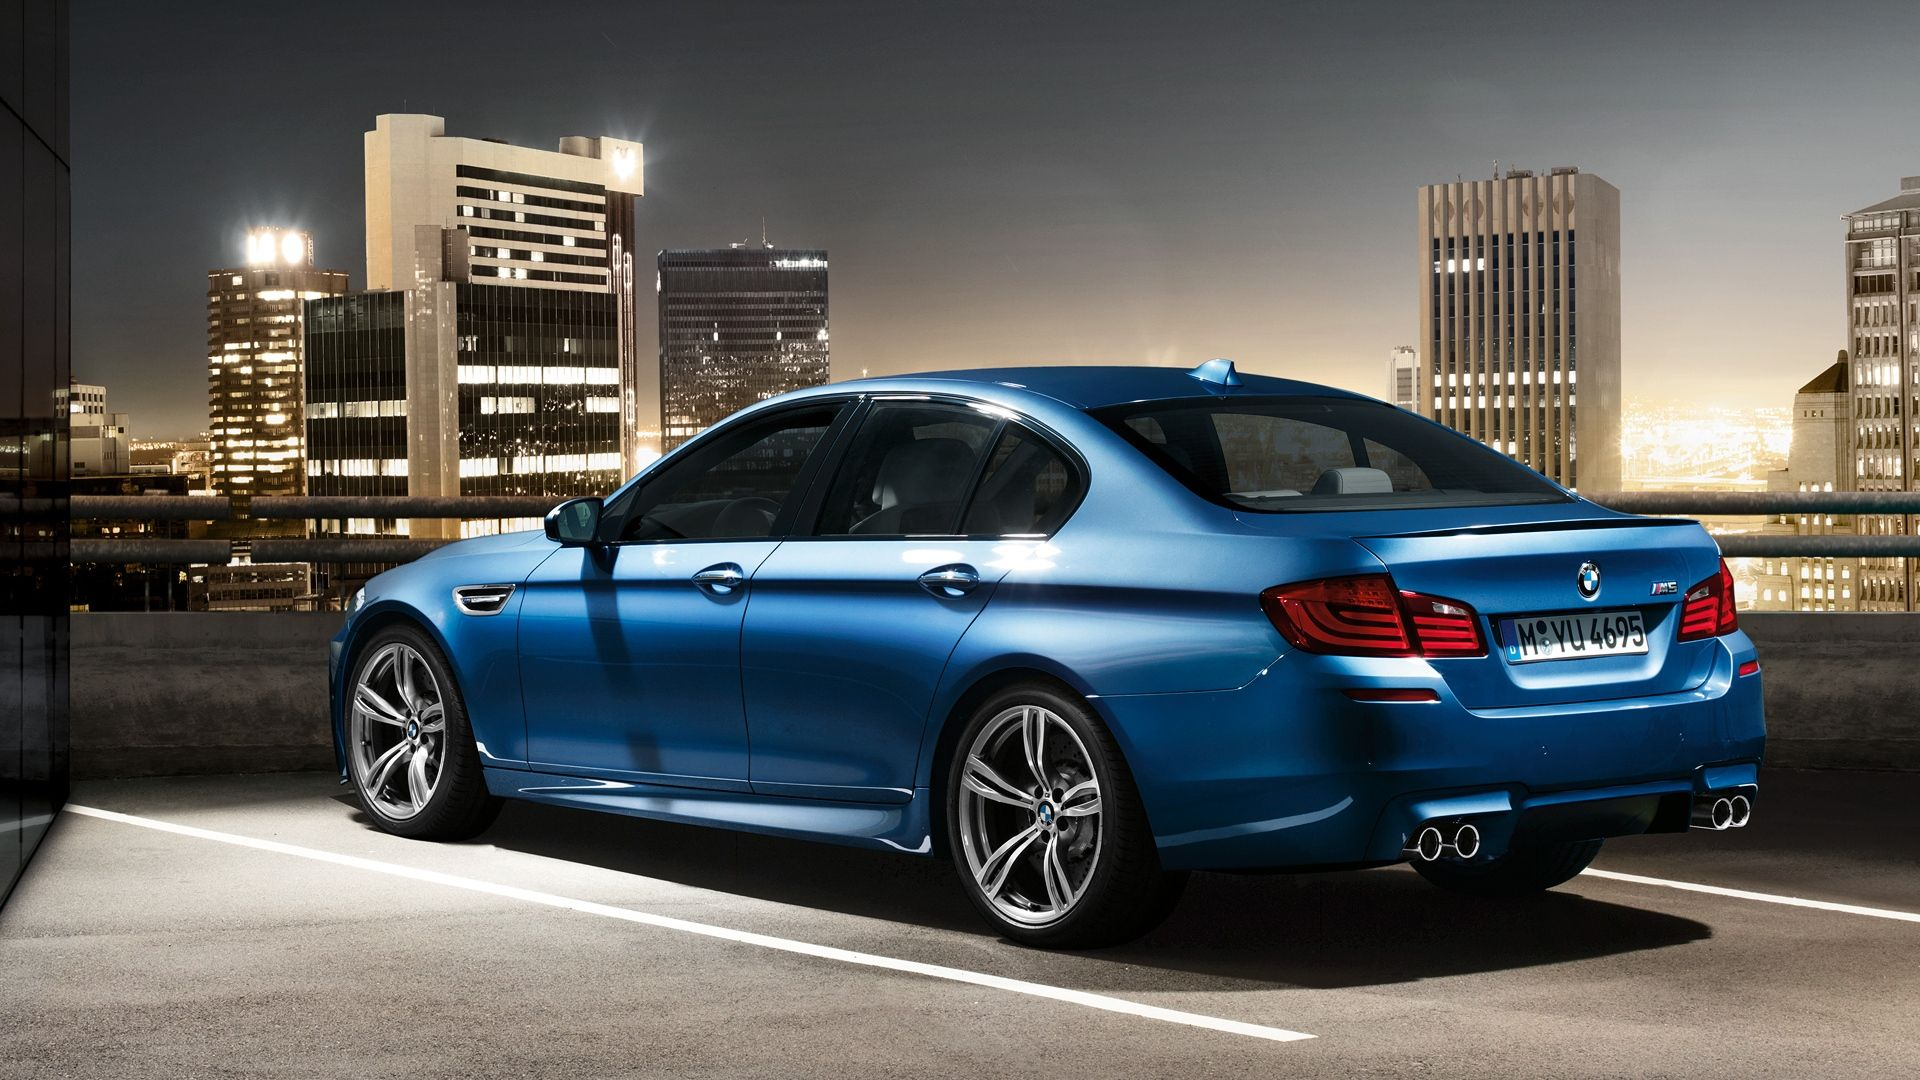 Bmw M5 F10 Salon